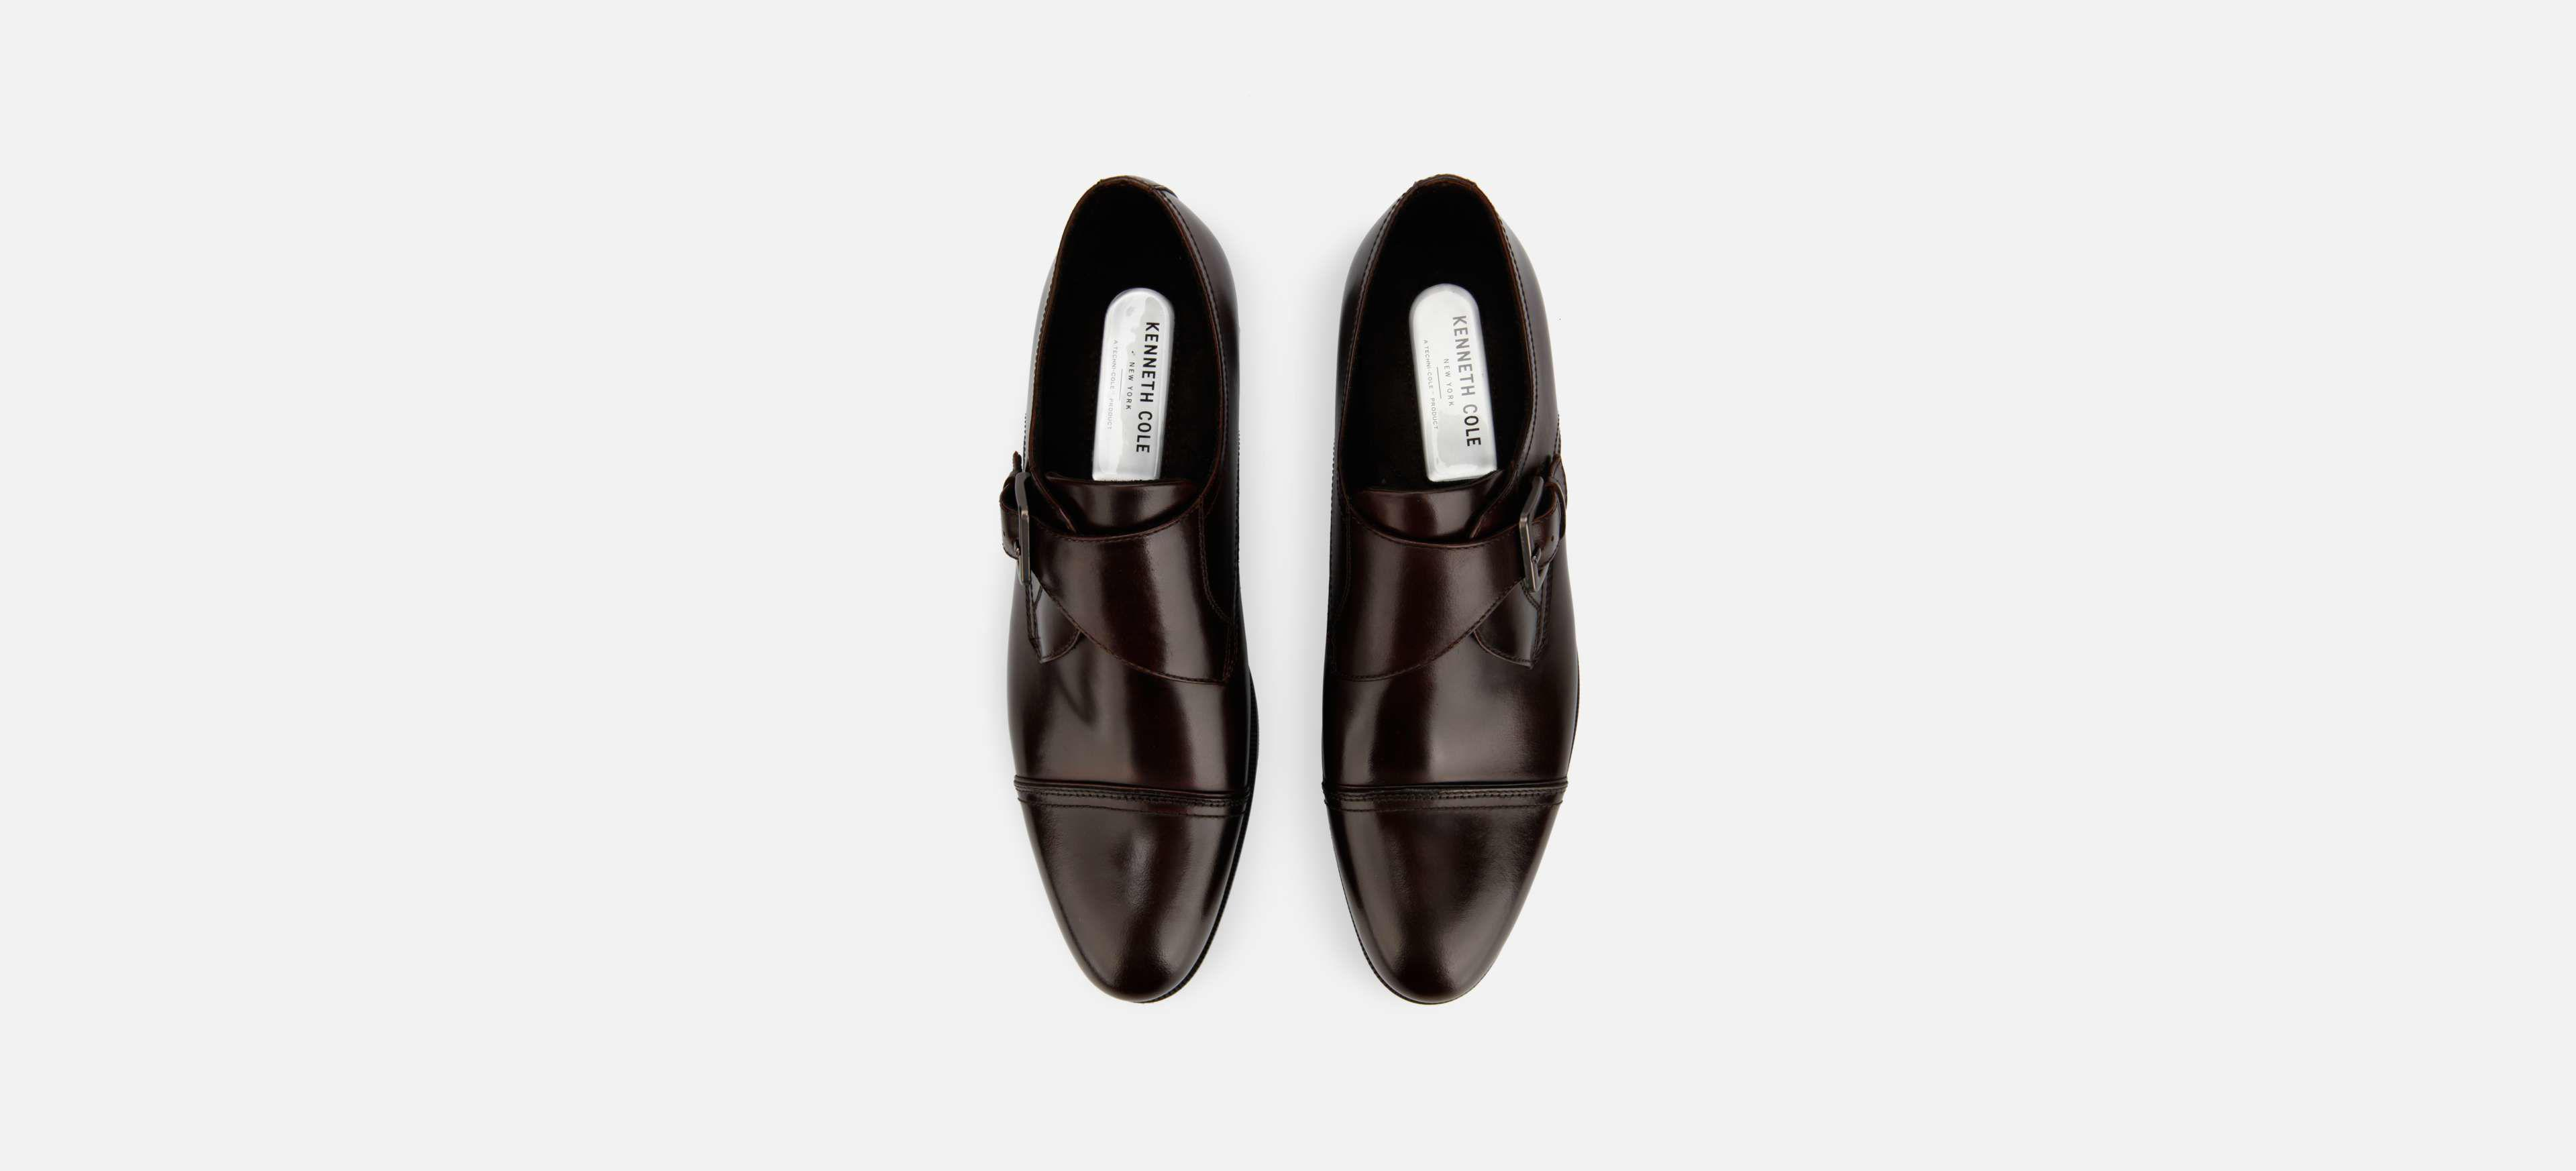 a9f488c3a4d1 Lyst - Kenneth Cole Capital Monk Strap Shoe In Waxed Leather in ...